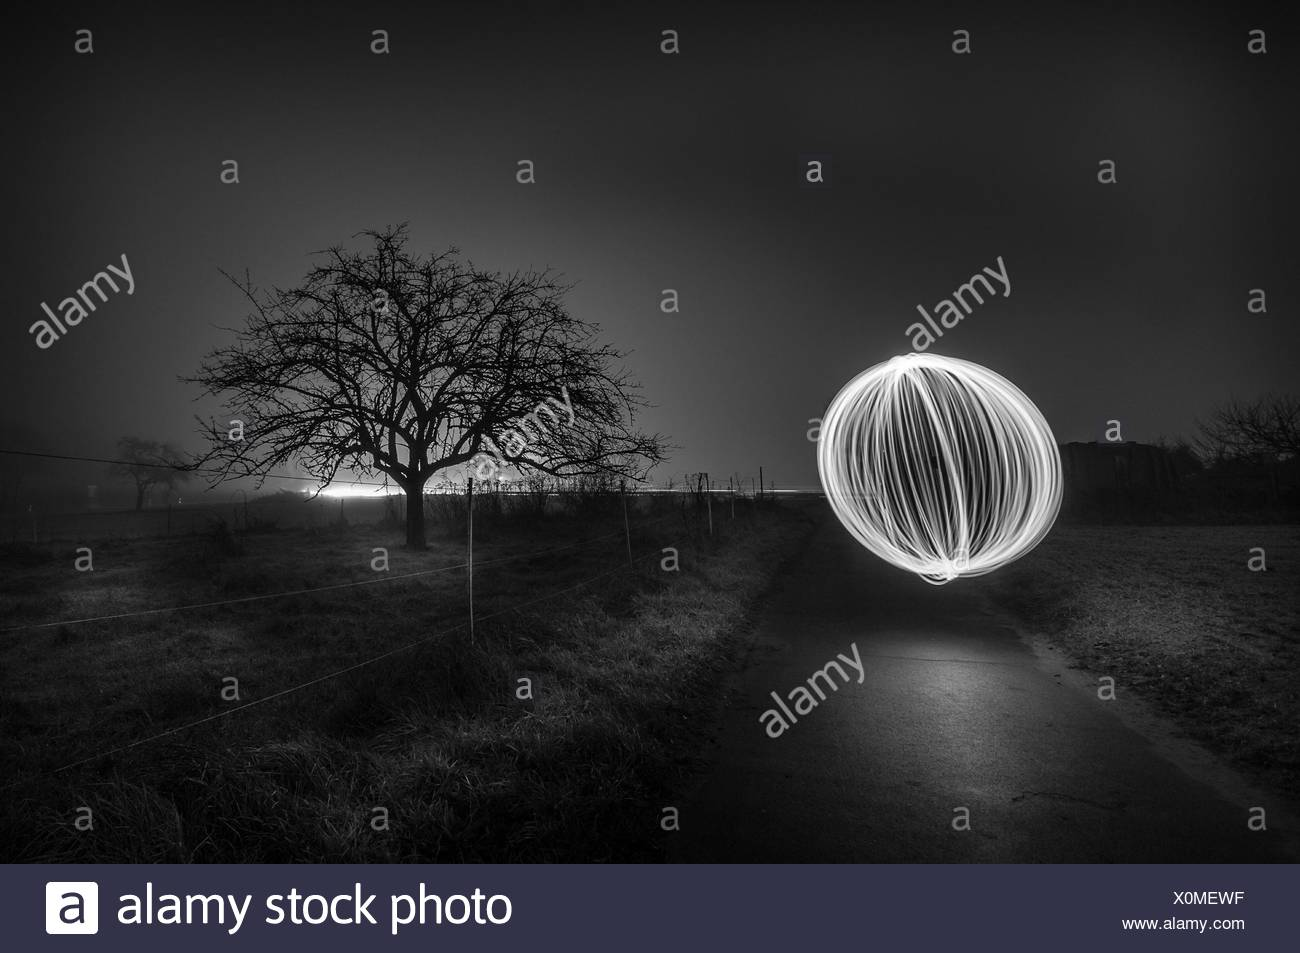 Light Trails Of Wire Wool At Country Road Against Sky At Night - Stock Image